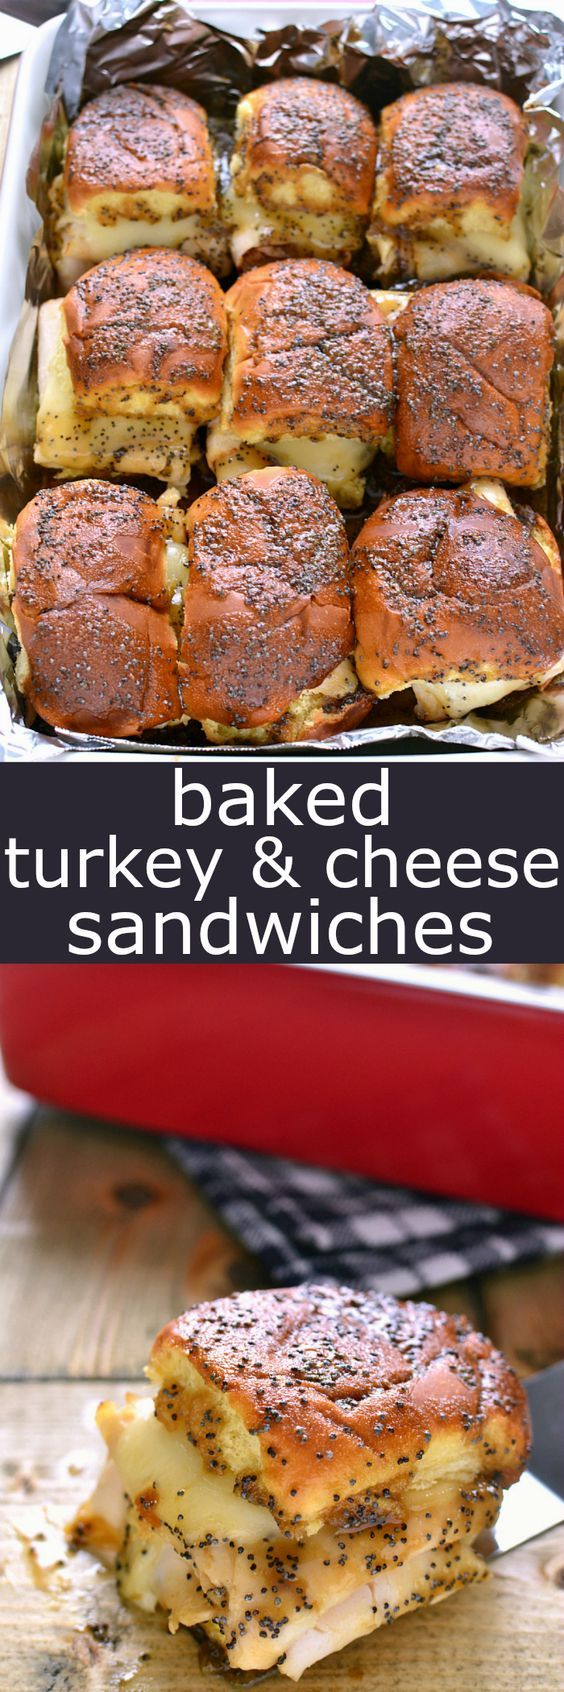 These Baked Turkey and Cheese Sandwiches are a family favorite! Make them ahead for game day dinner or your next party!